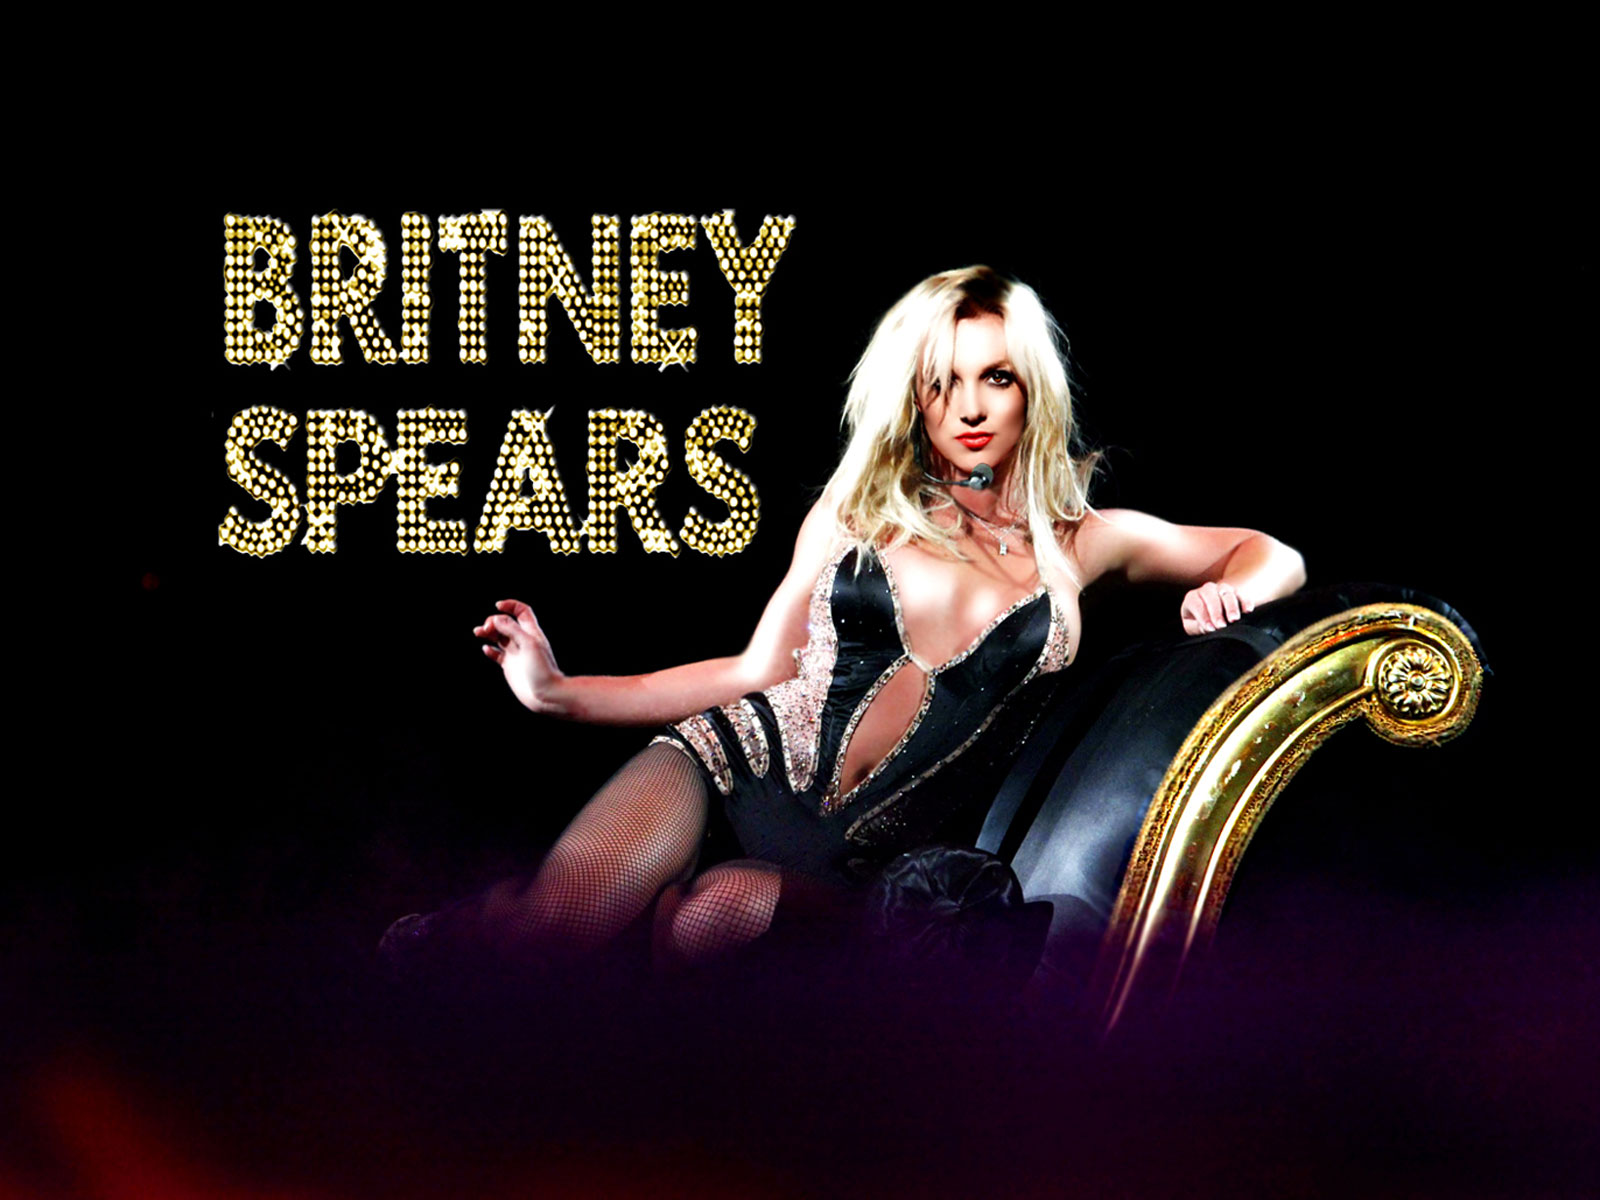 britney spears hd wallpapers collection - photo #29